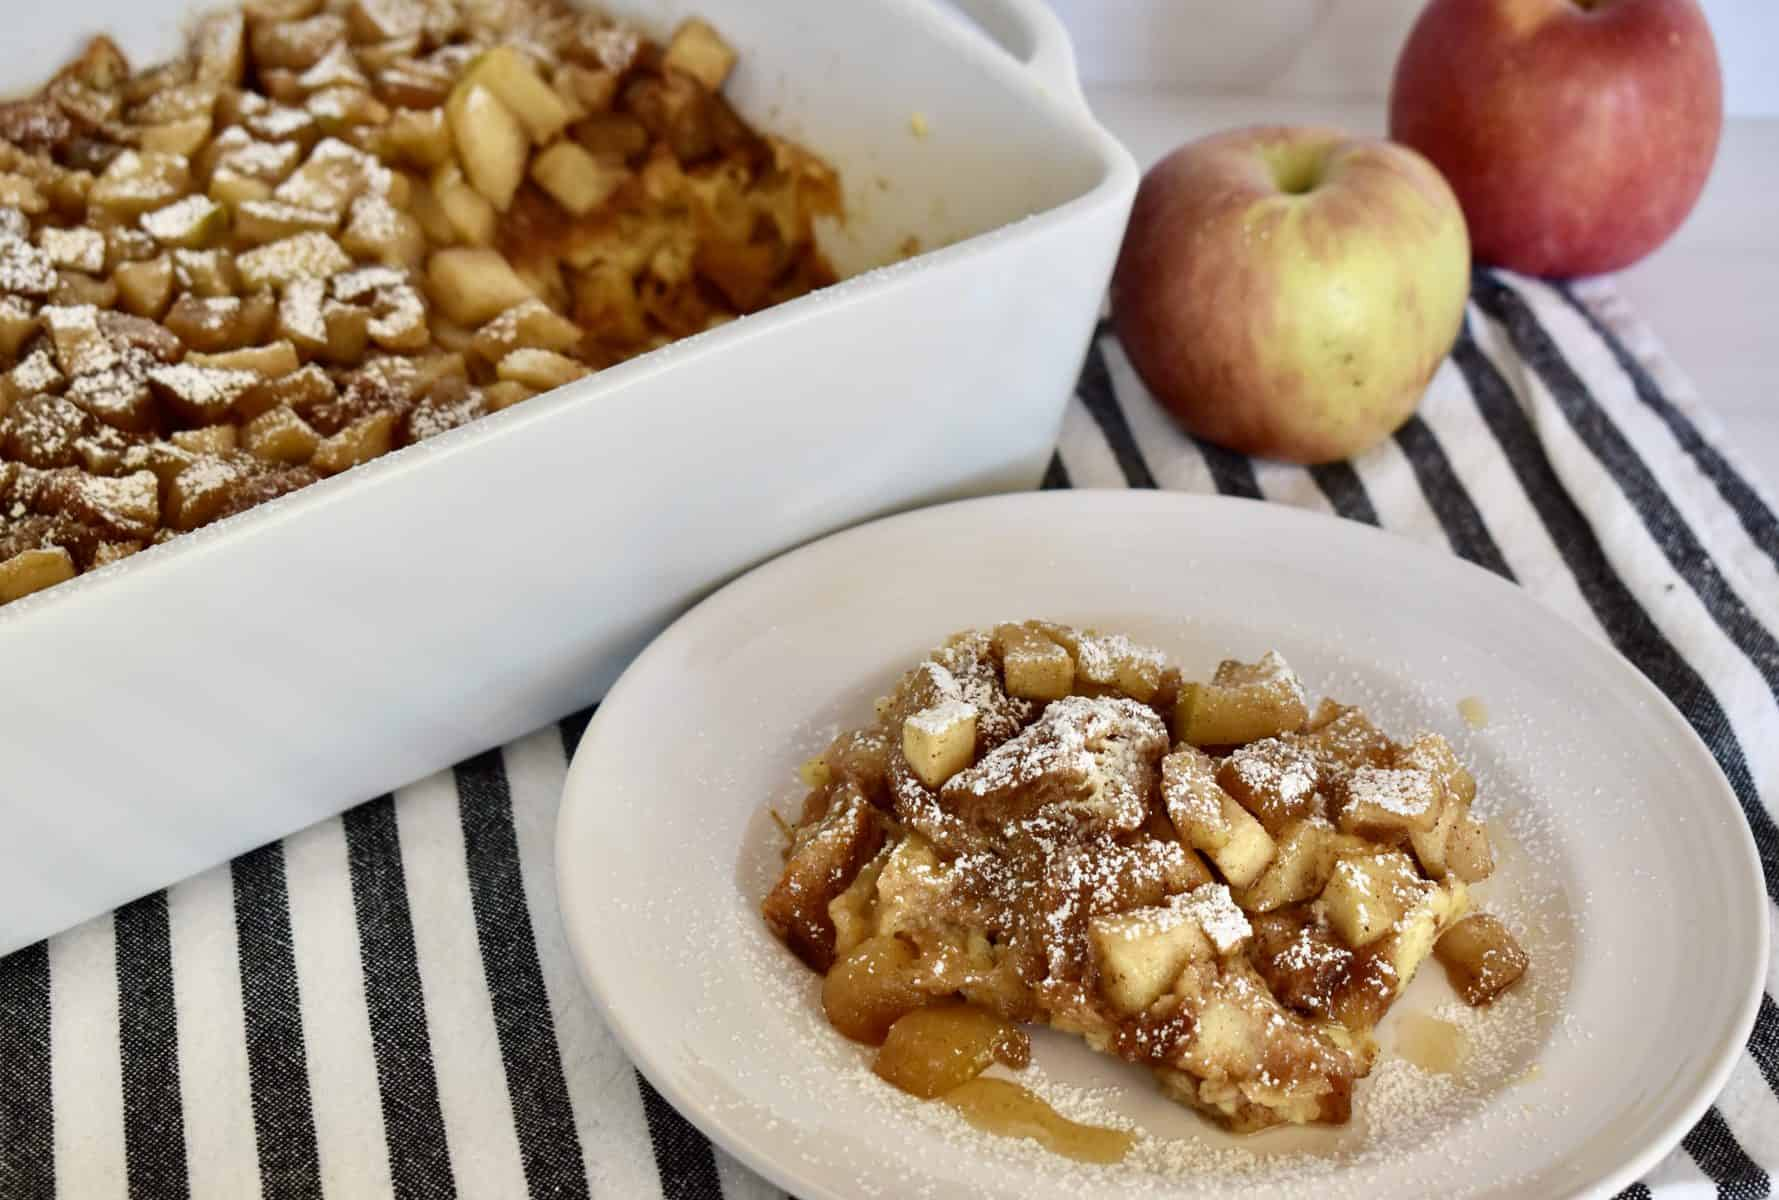 Croissant Baked French Toast in a dish with apples behind it.